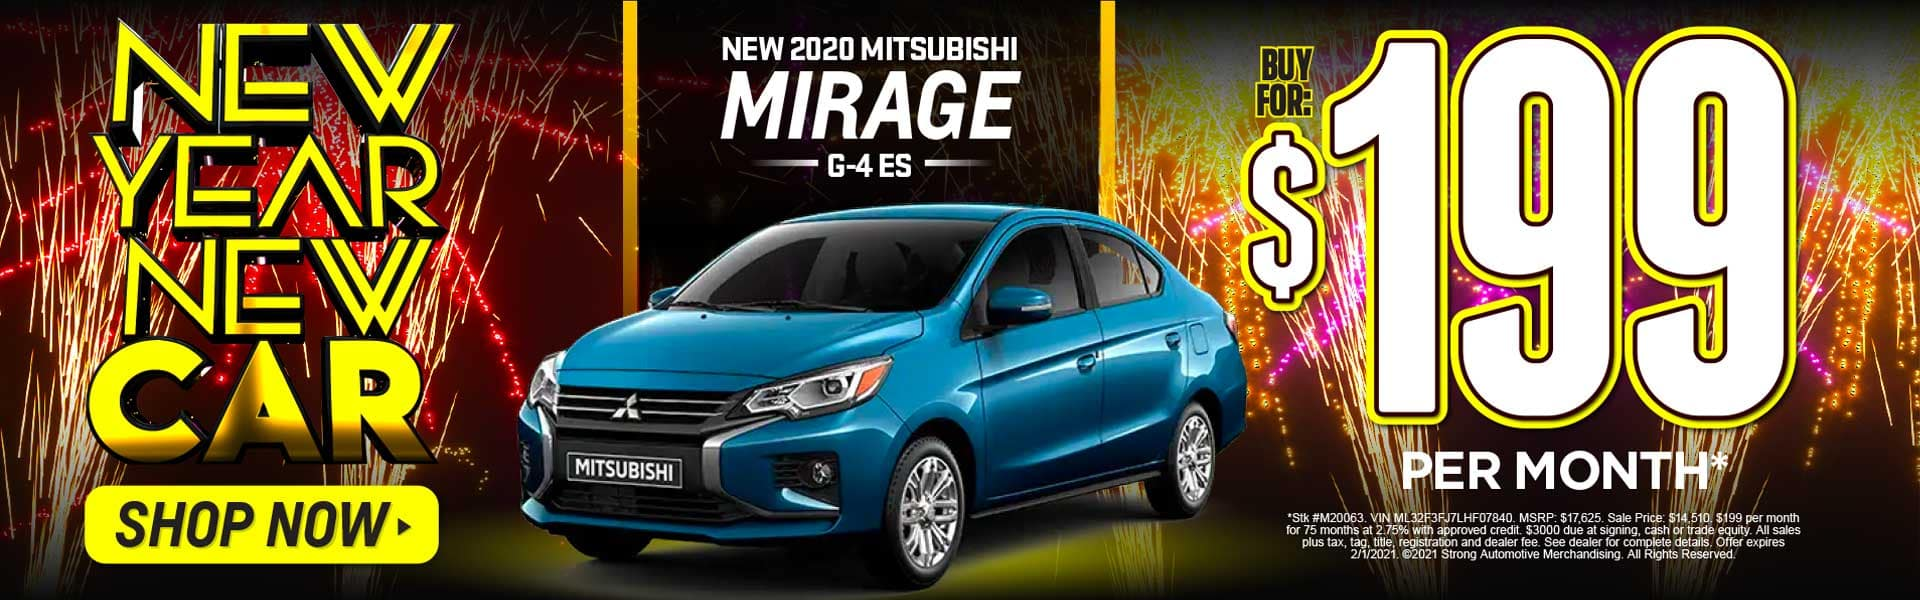 2020 MITSUBISHI MIRAGE G-4 ES $199 A MONTH* ACT NOW